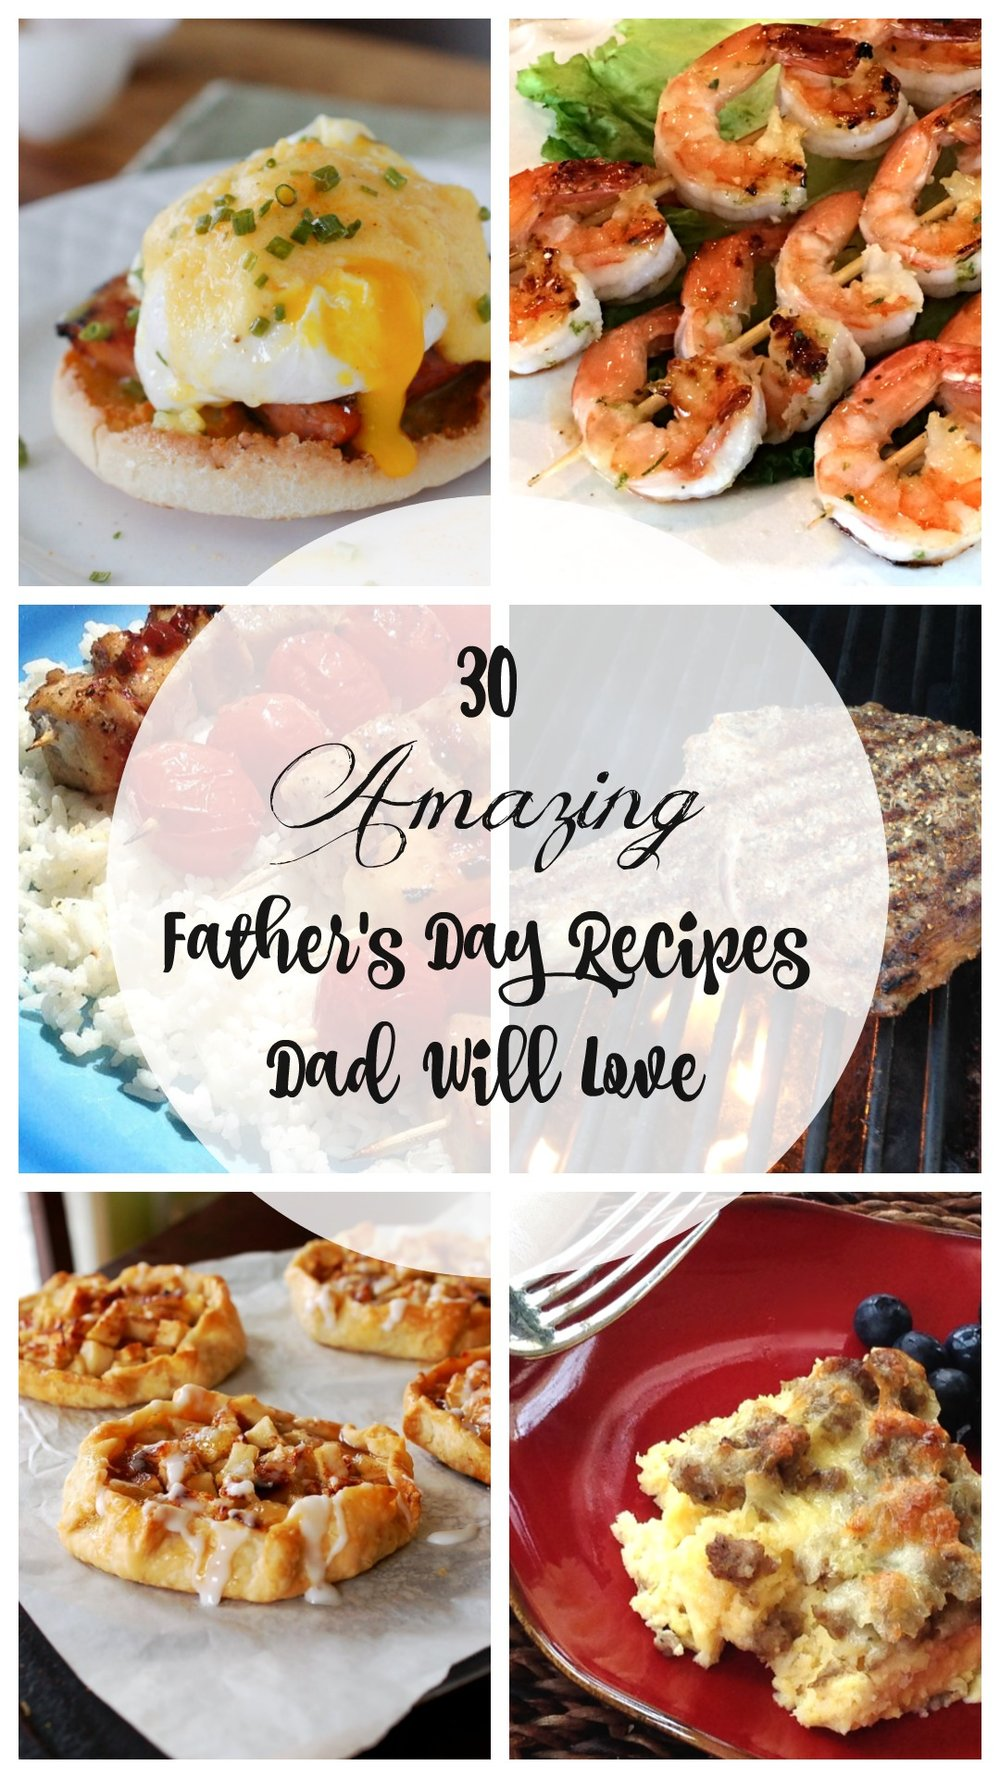 Recipe Roundup- 30 Amazing Father's Day Recipes Dad Will Love